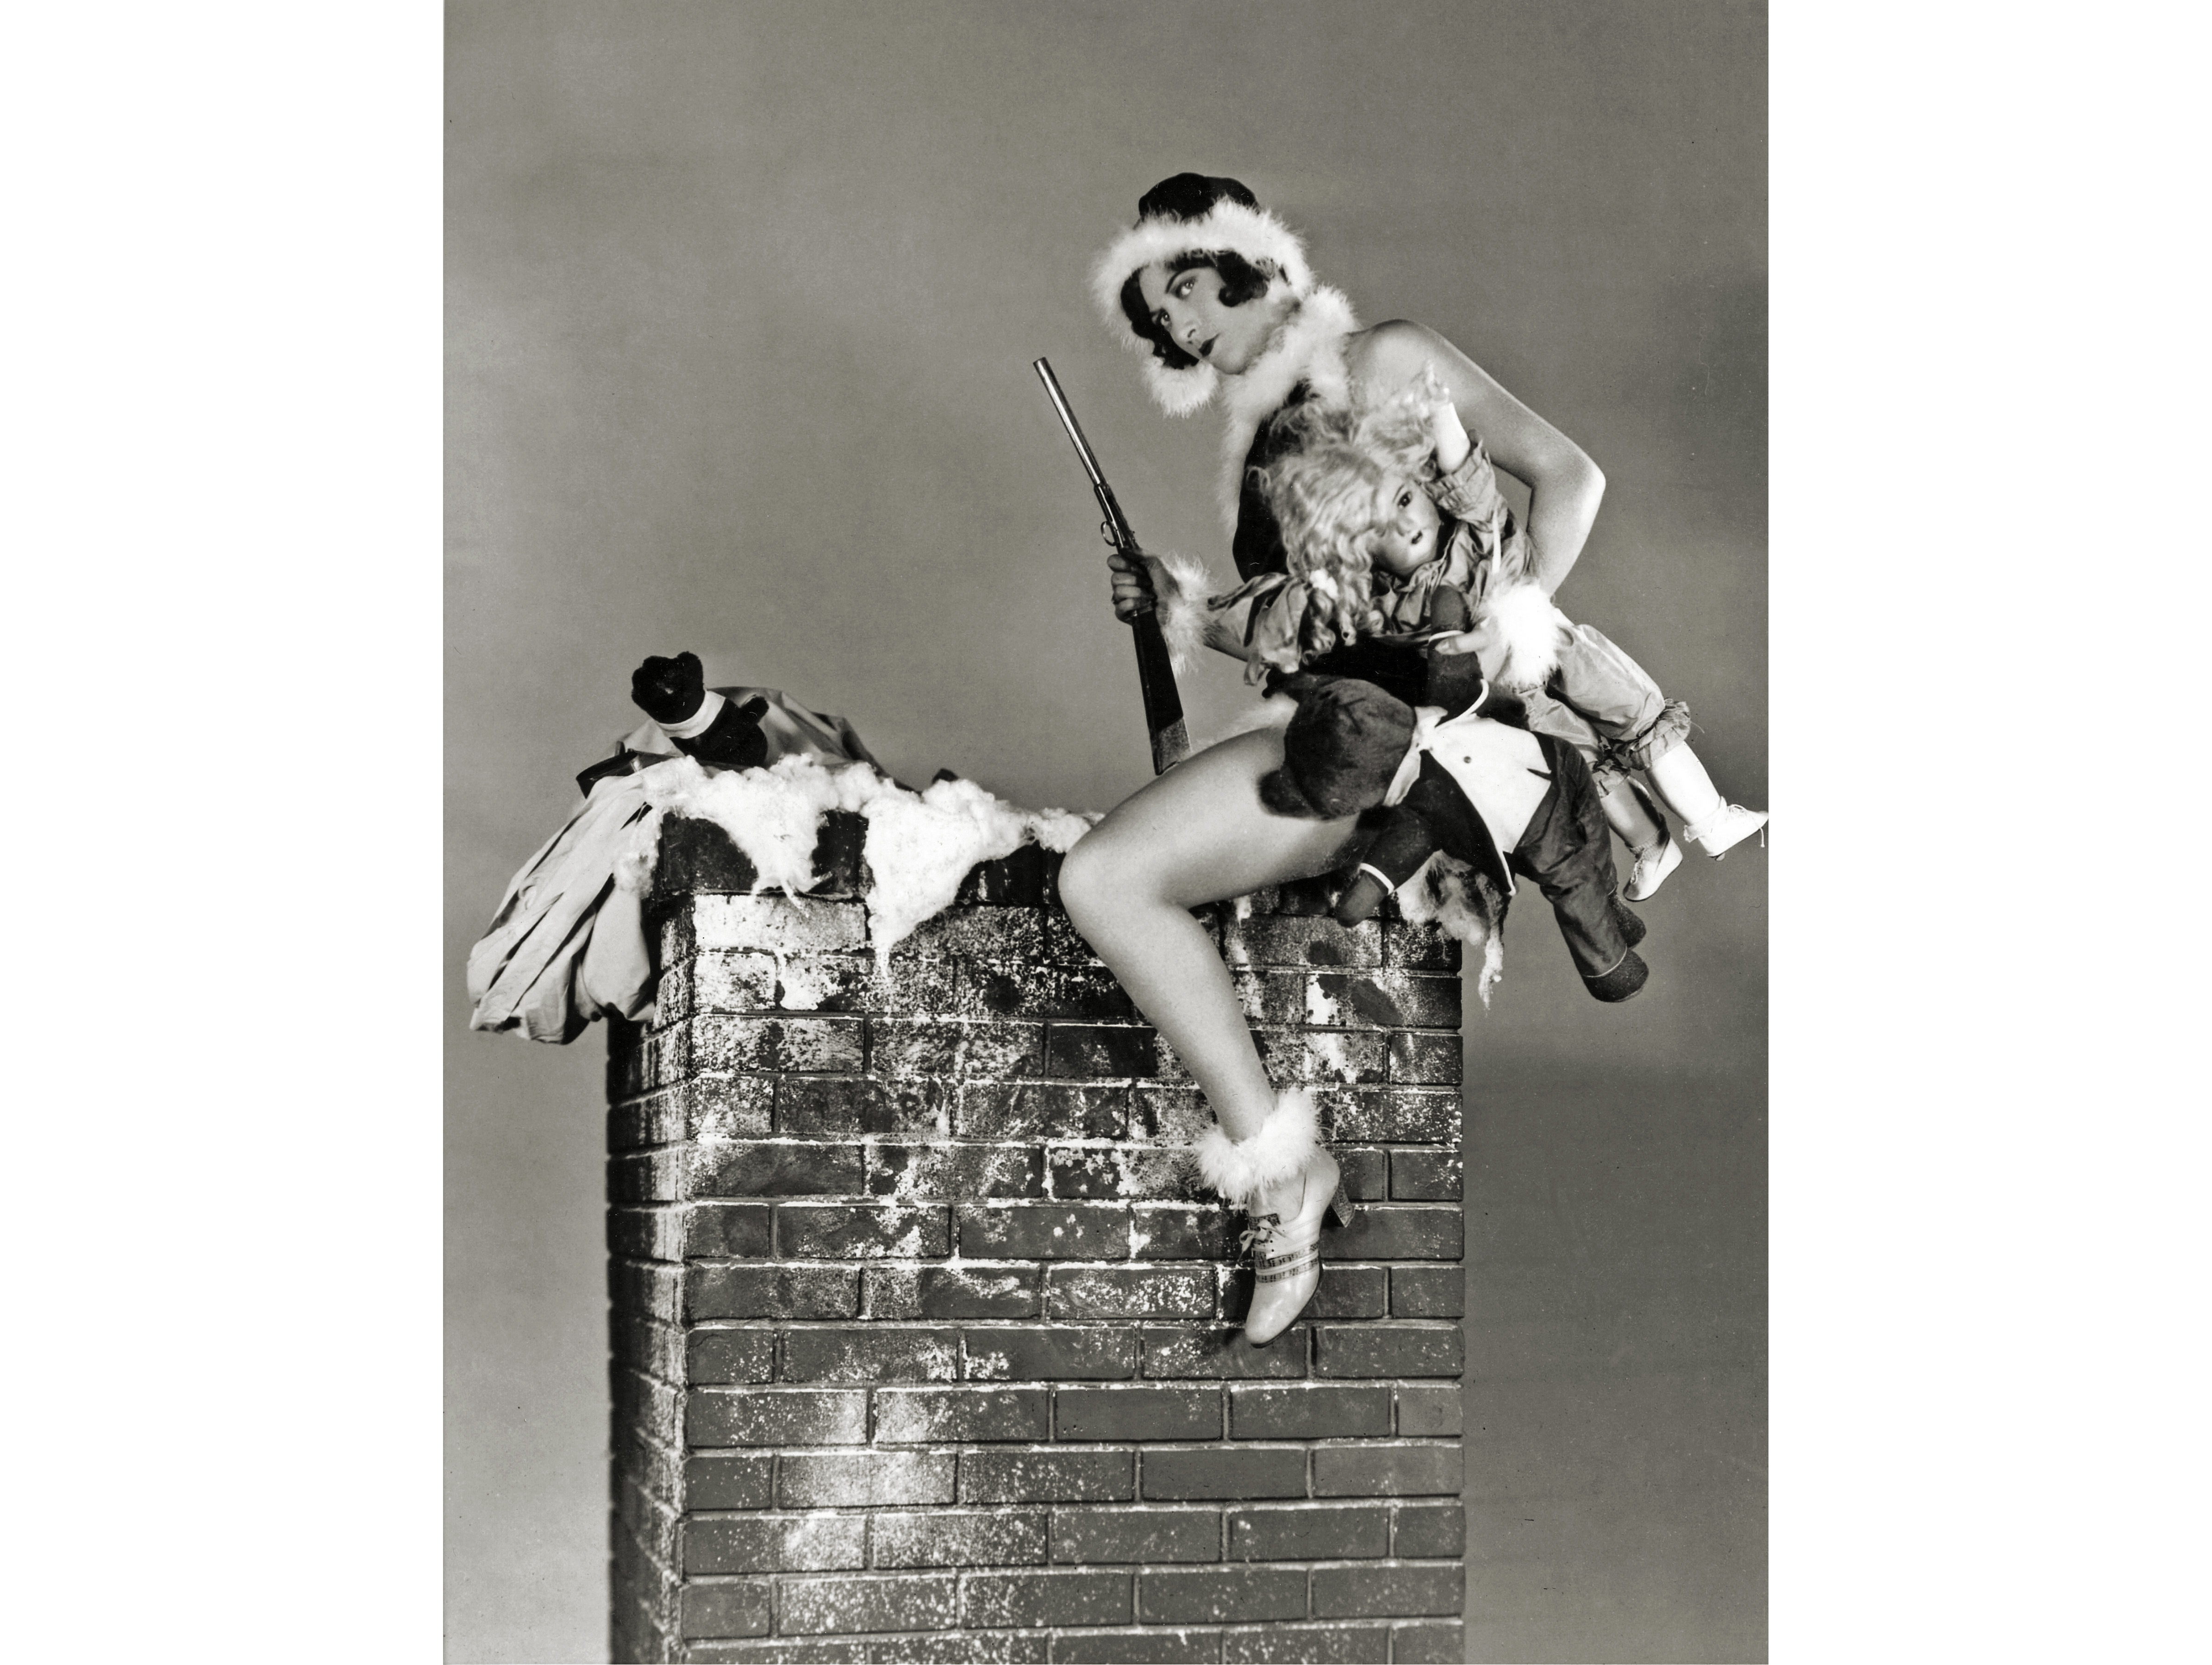 Here comes Santa Claus in the guise of Joan Crawford, bringing presents for all good boys and girls.